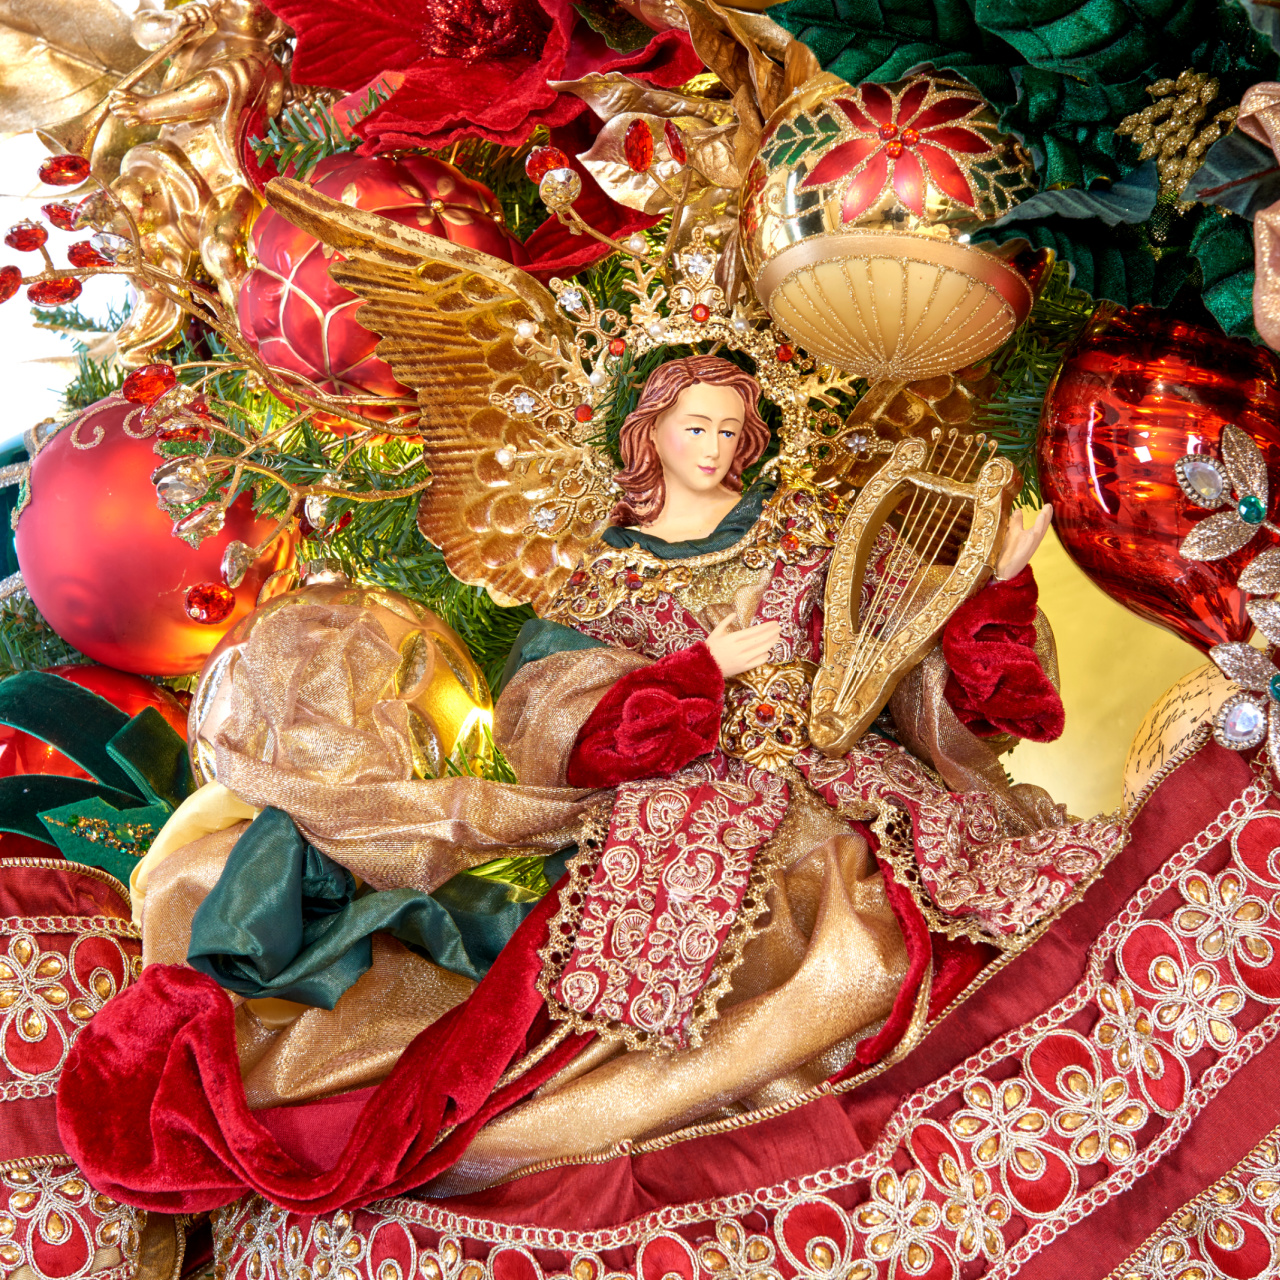 Luxury Christmas Nativity Decorations Ornaments and Figurines